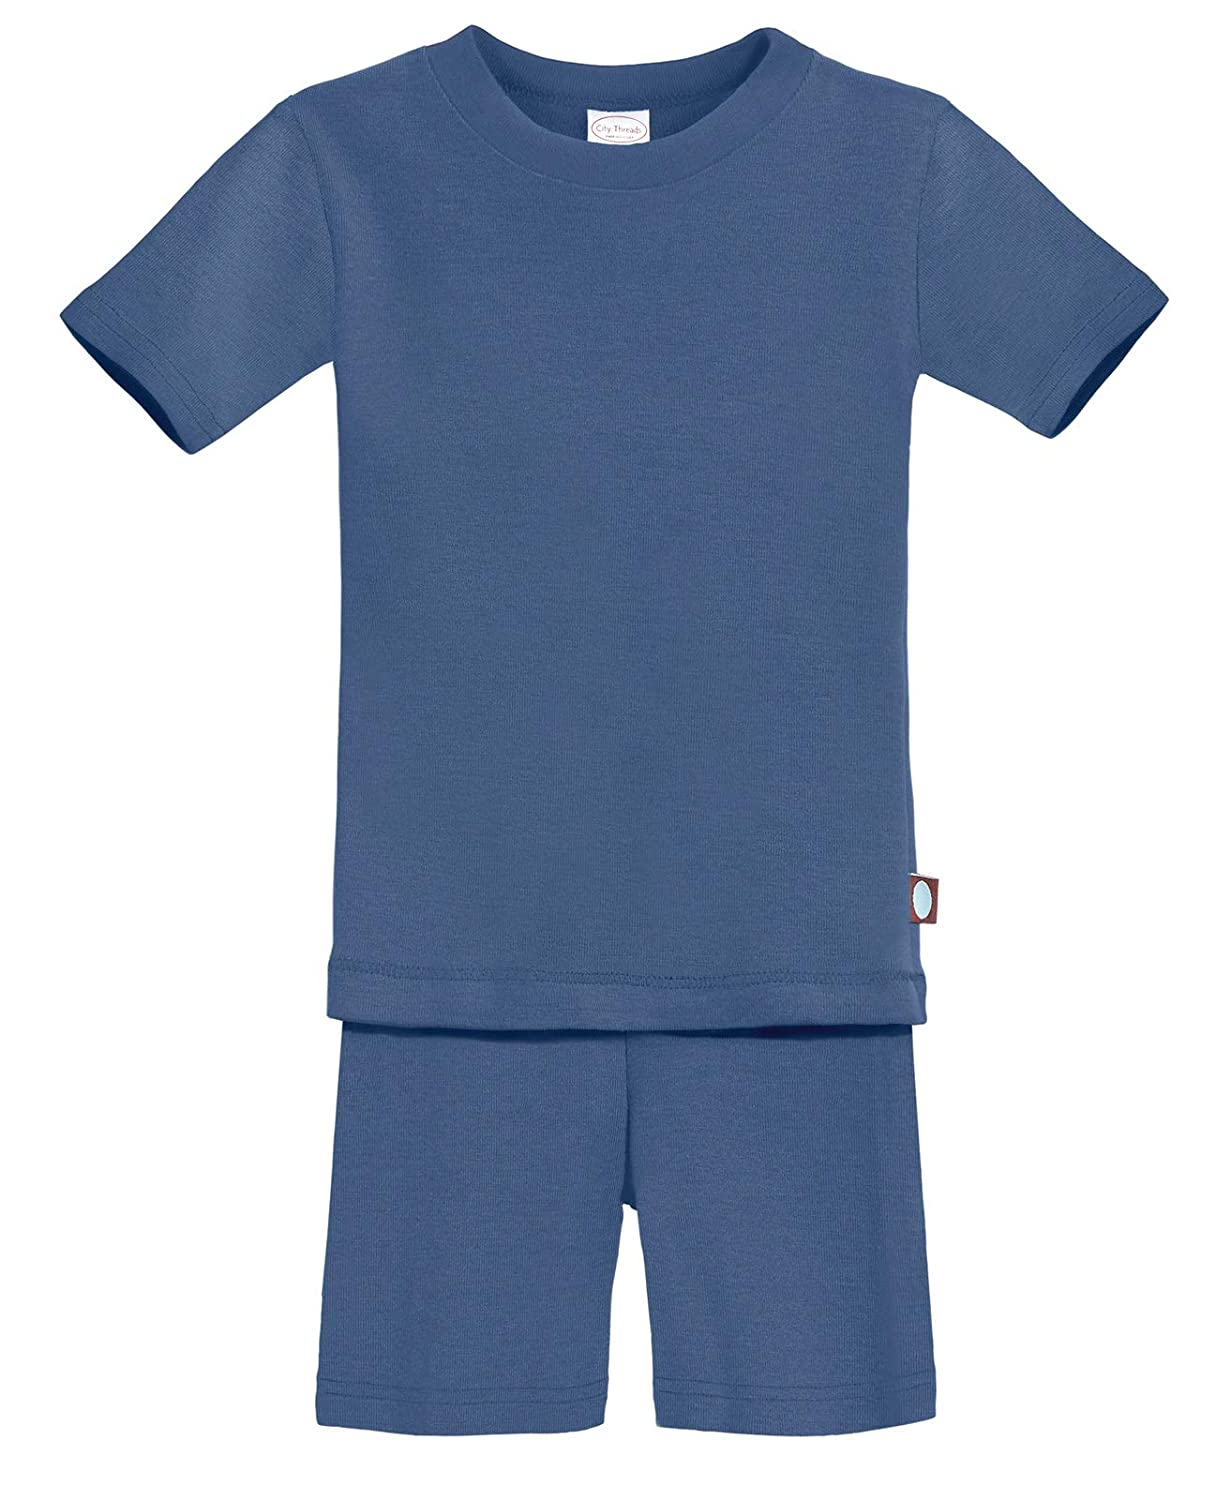 Made in USA City Threads Boys and Girls Short Sleeve and Short Snug PJs Organic Cotton